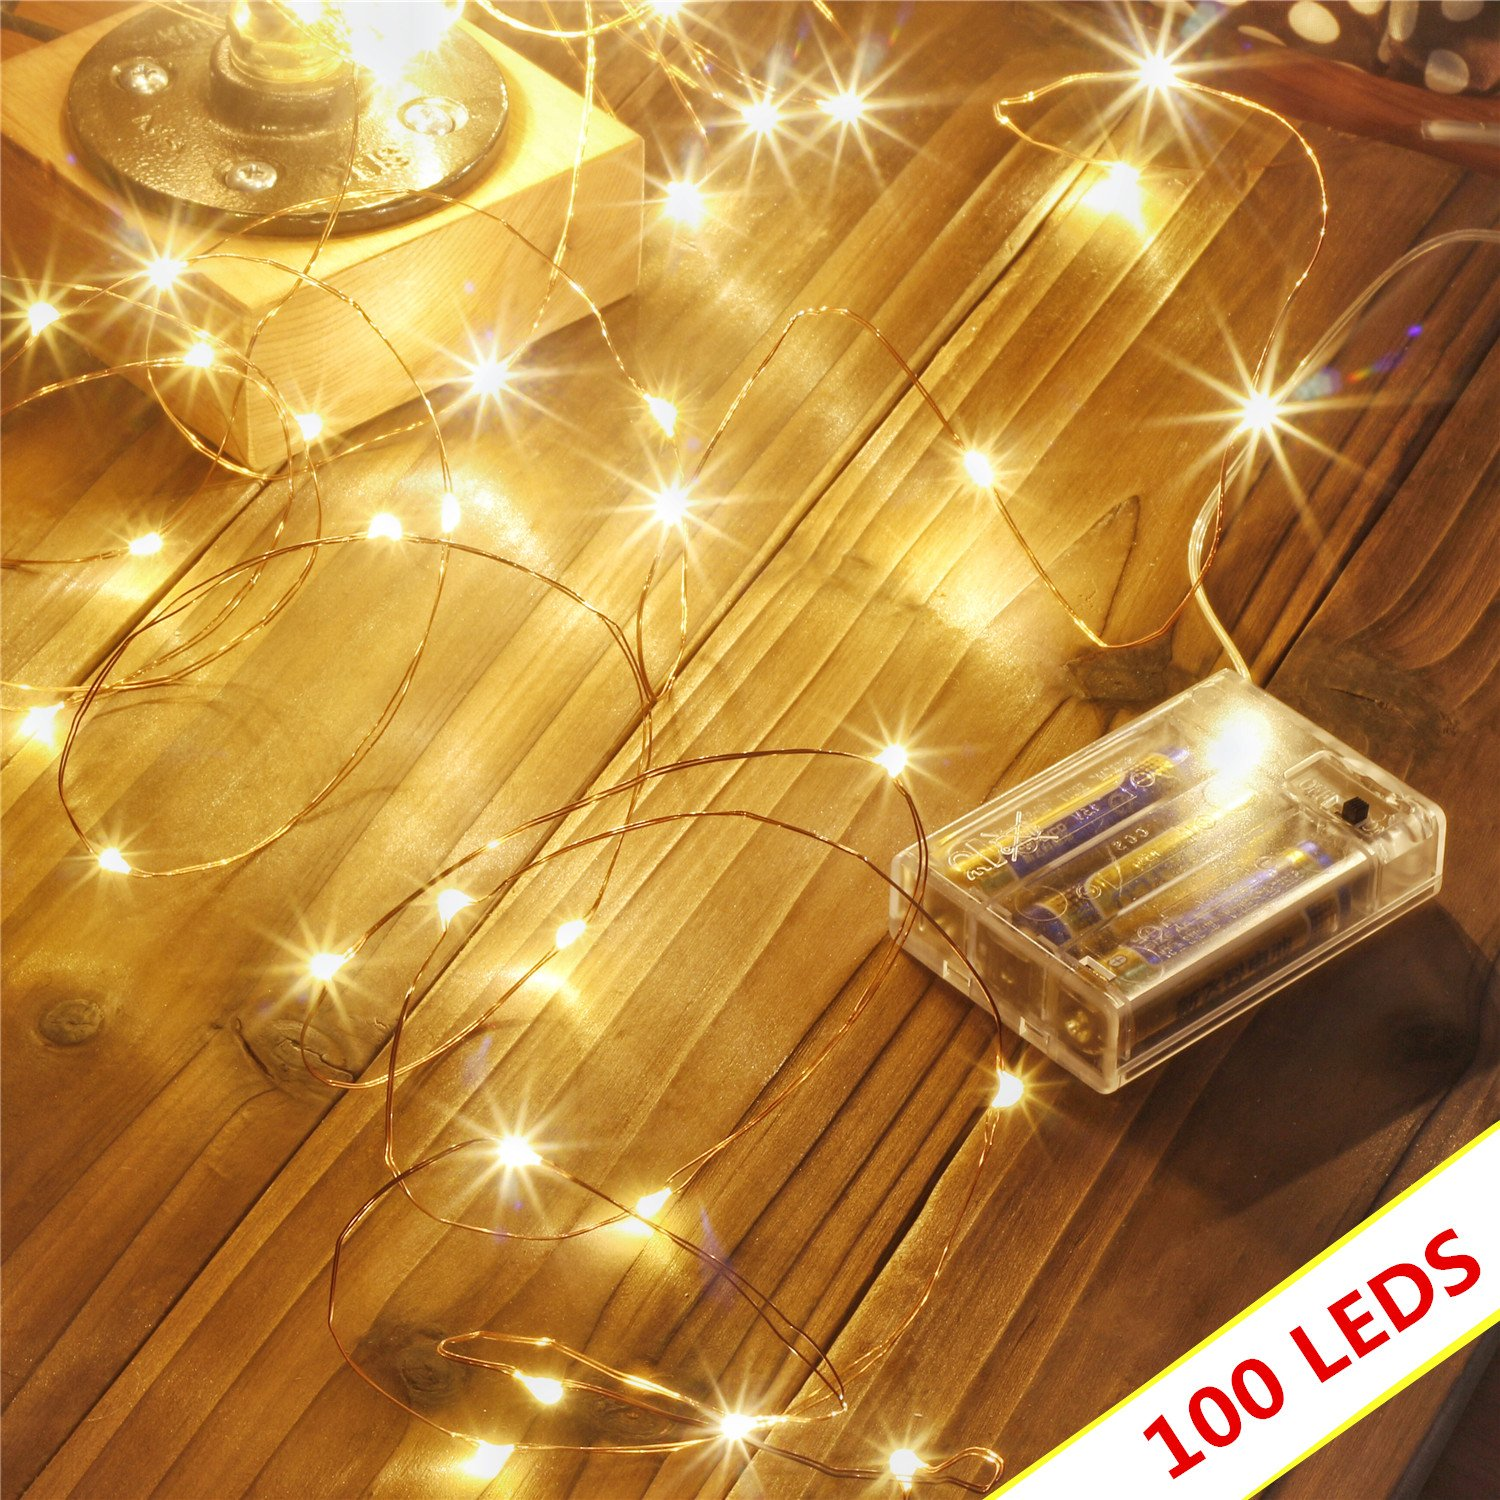 2b2fa5c9c597 Led String Lights 100 LEDs Decorative Fairy Battery Powered String Lights, Copper  Wire Light for Bedroom,Wedding(33ft/10m Warm White): Amazon.co.uk: ...